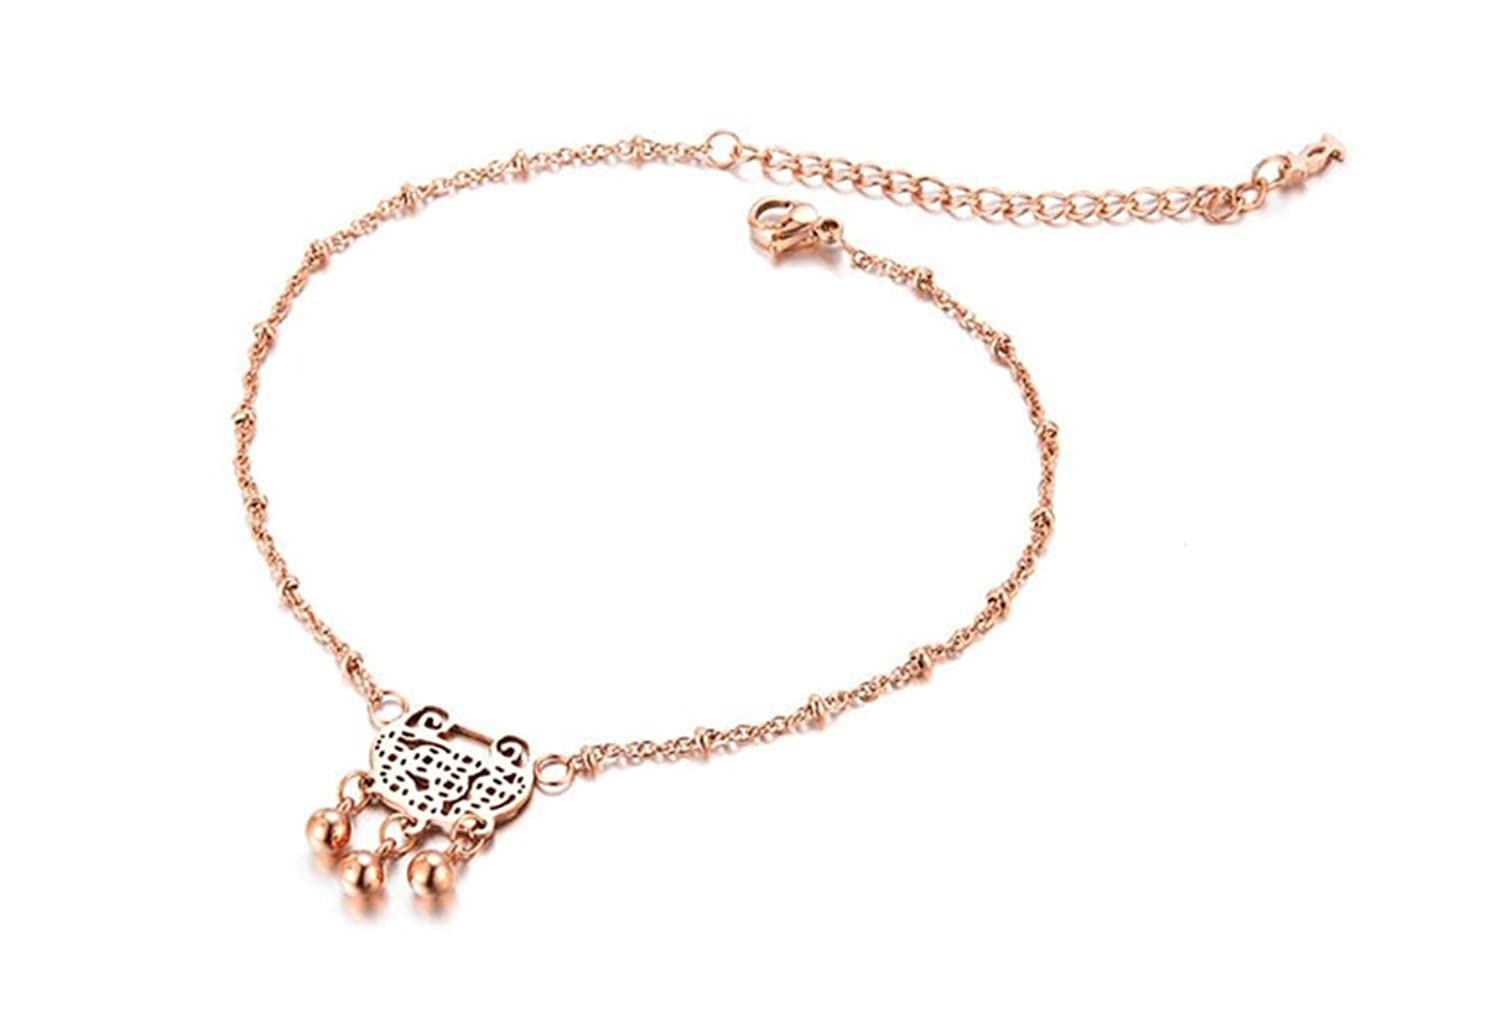 KnBoB Anklet Women Gold Plated with Pendant Lovely Lock Beach Barefoot Foot Chain Rose Gold